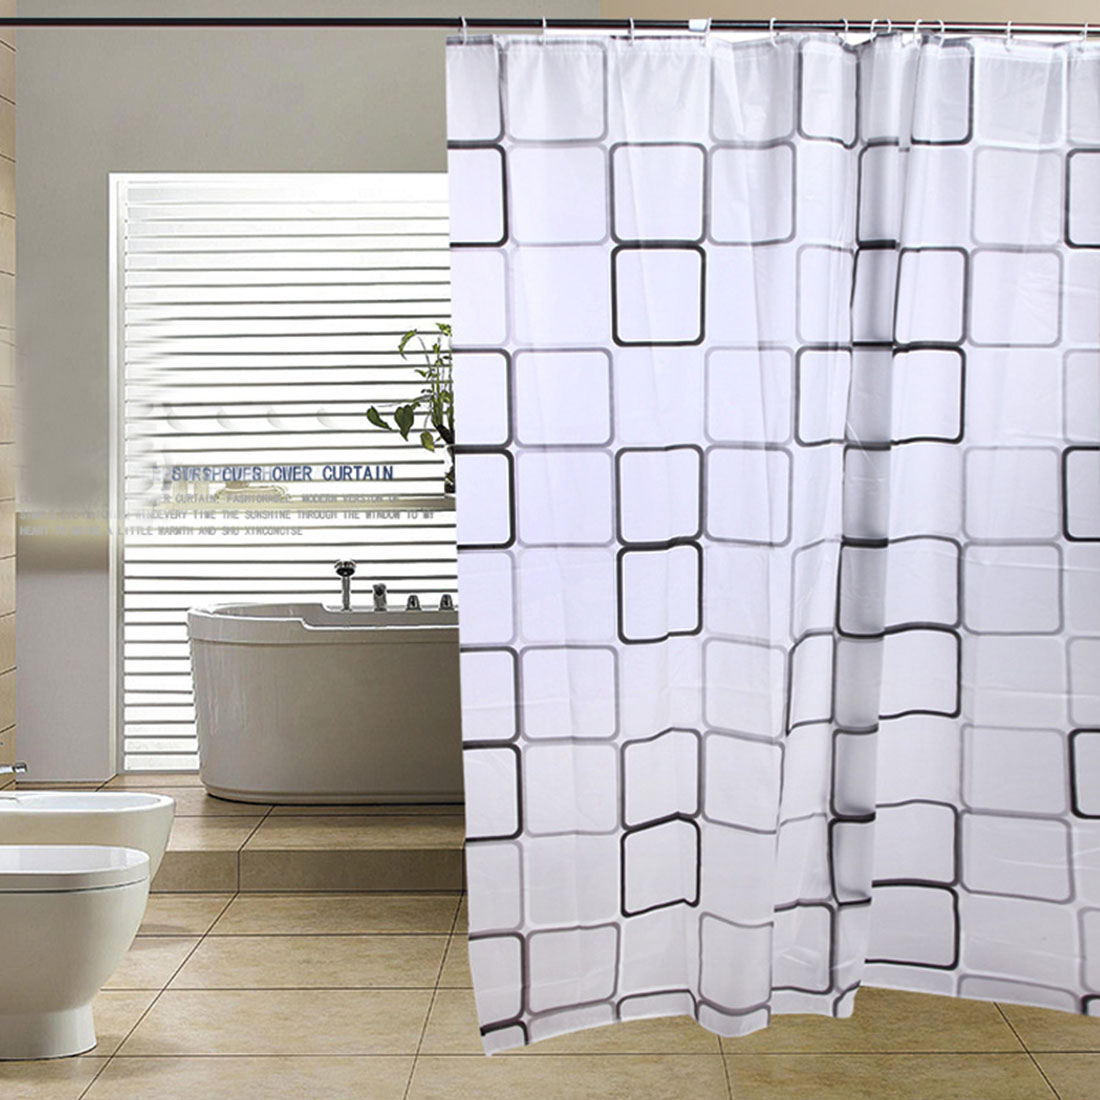 Top sale Waterproof Shower Curtain With Hook Plaid Bathroom Curtains Bath Bathing Sheer For Home Decoration